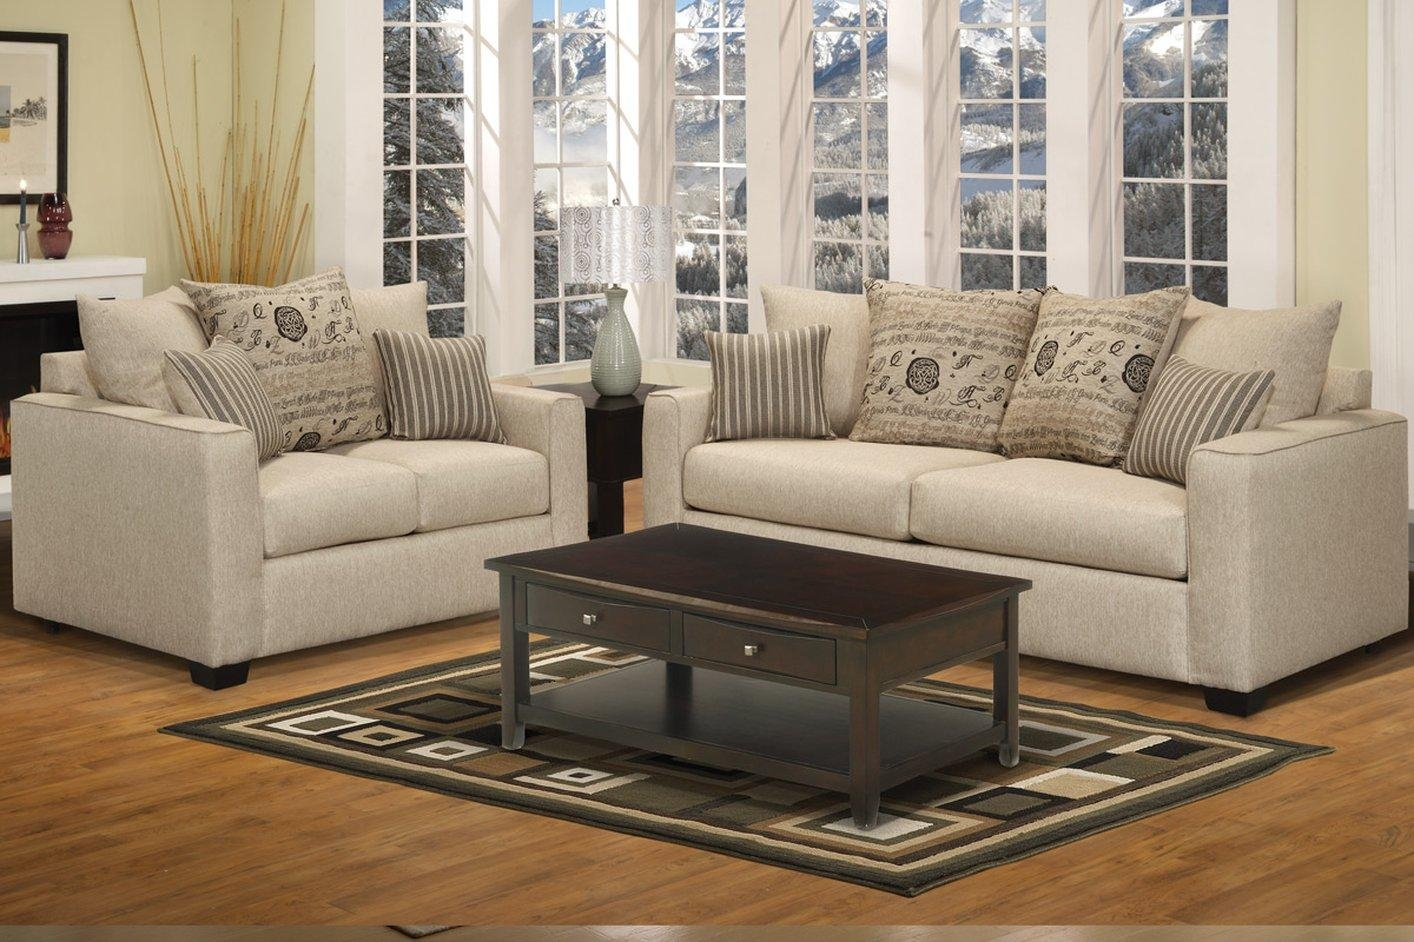 Sofa & Loveseat Set – Steal A Sofa Furniture Outlet Los Angeles Ca Intended For Sofa Loveseat And Chairs (View 5 of 20)